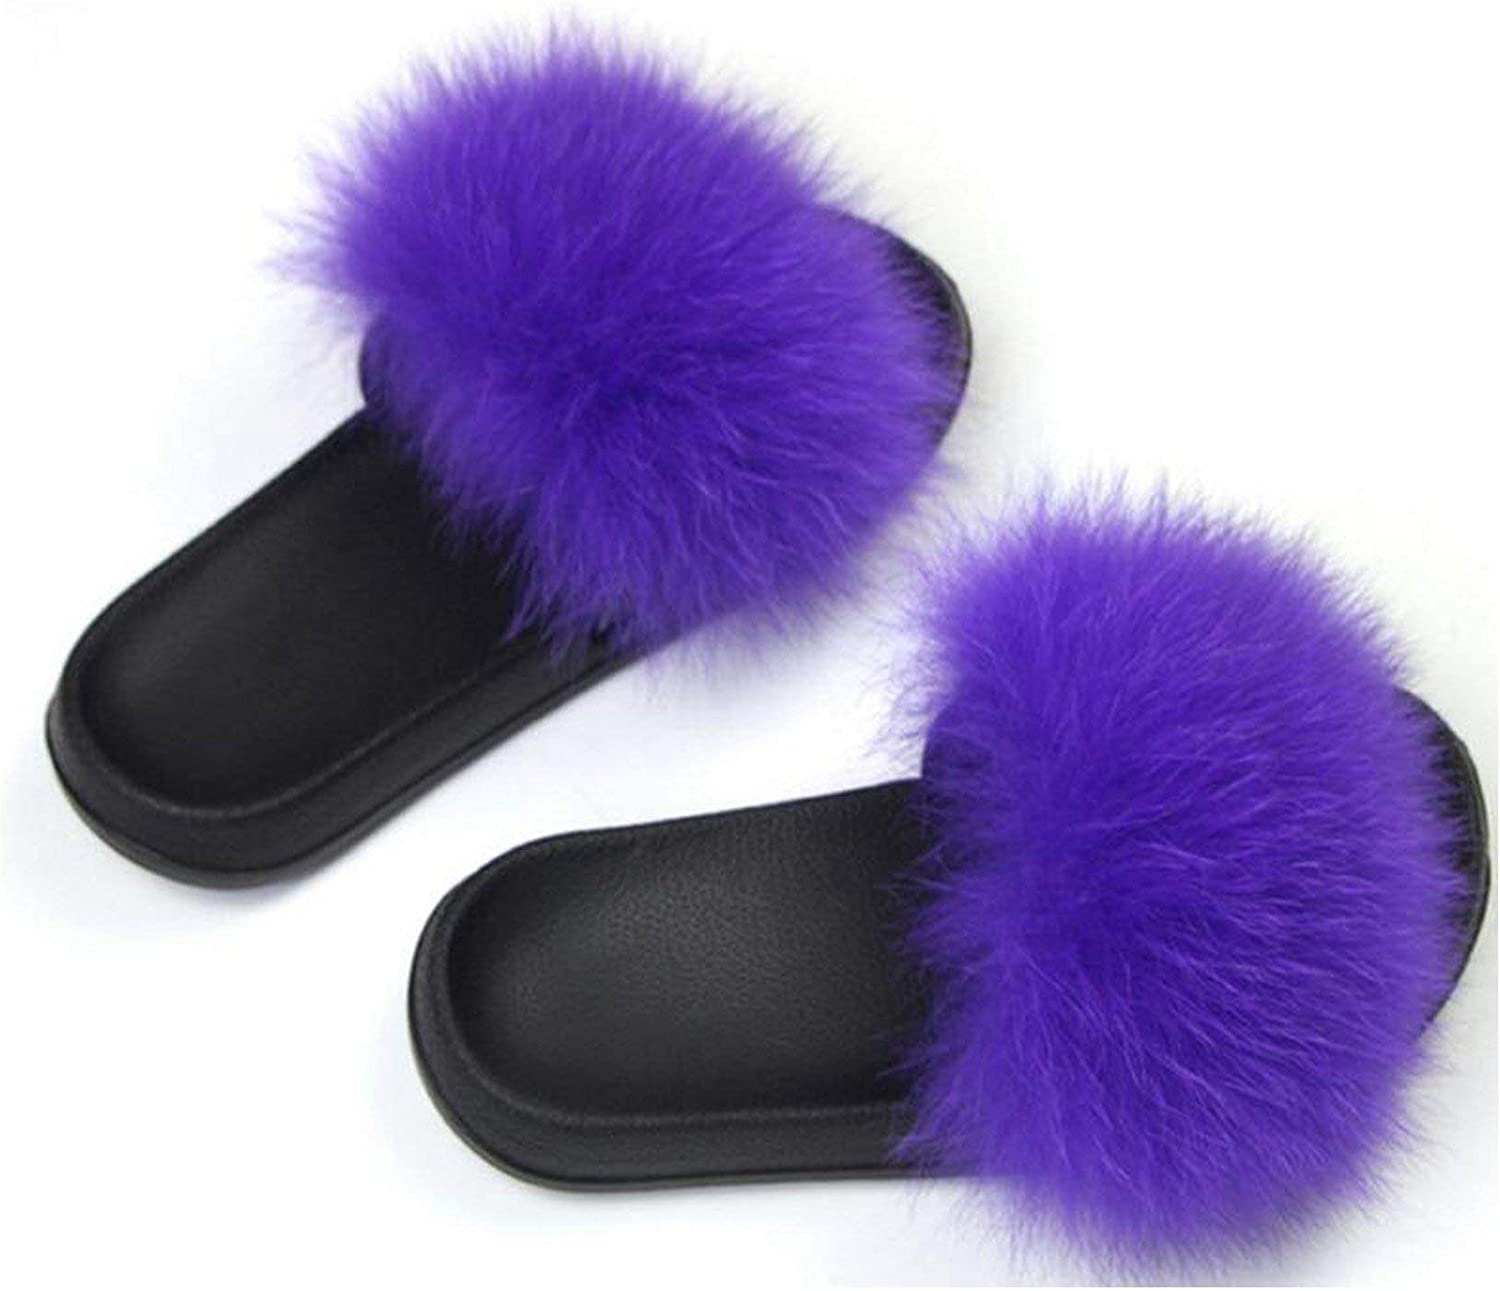 Leifun Women's Fox Hair Slippers Warm Furry Slippers Plush Fashion Indoor Solid Slippers